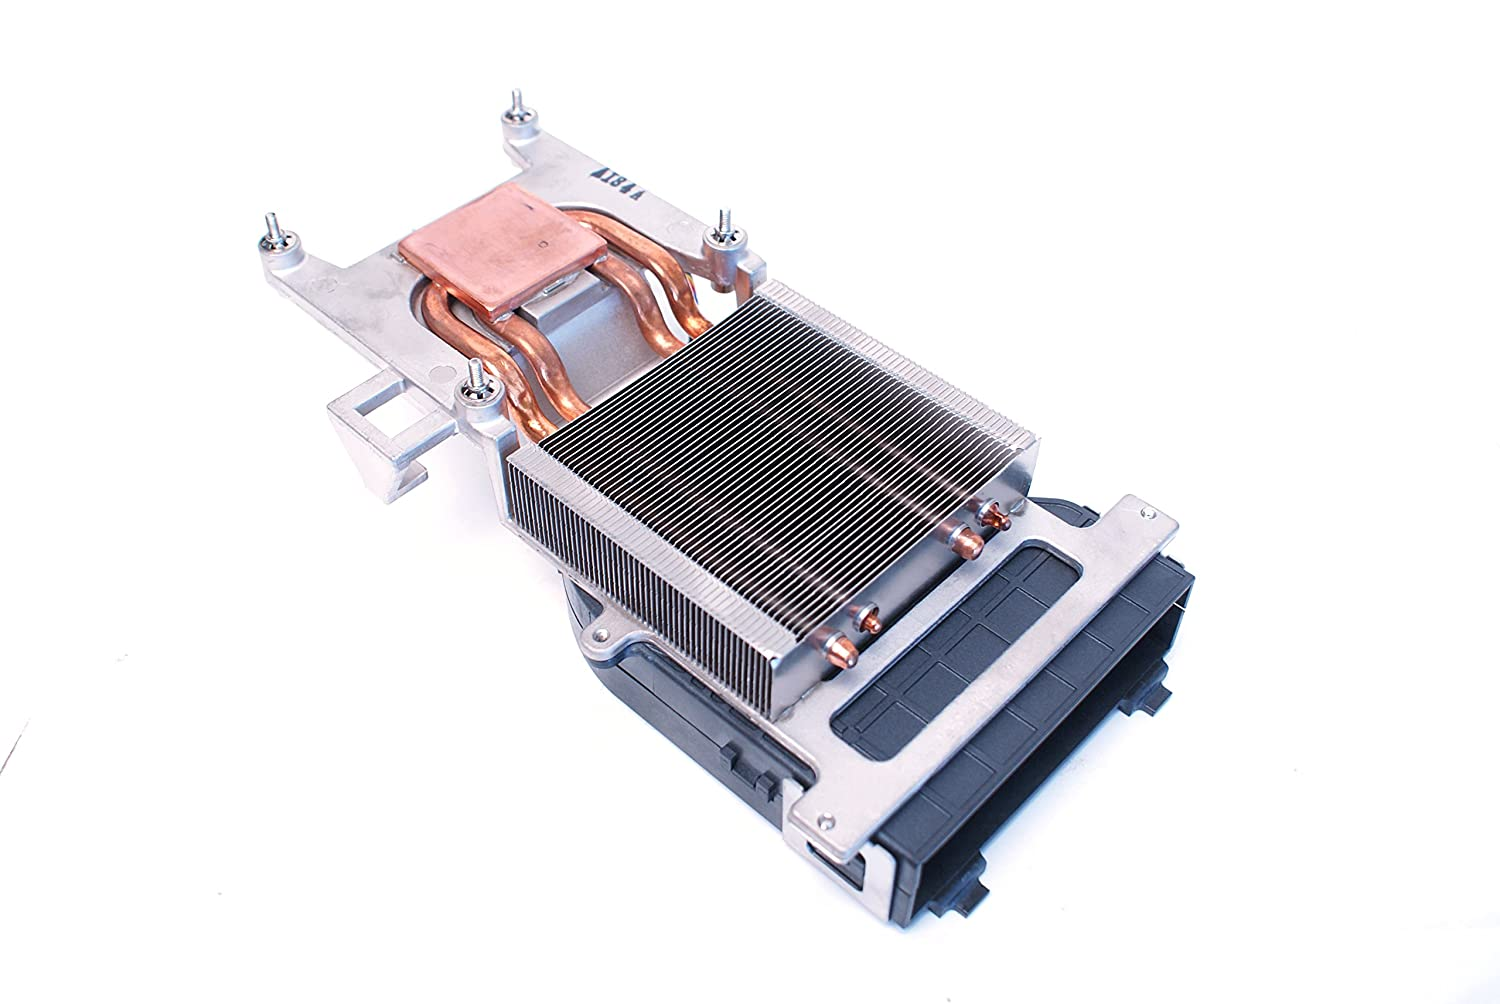 Genuine Dell J50GH BFB1012H FVMX3 Optiplex 790 990 Small Form Factor SFF Heatsink And Fan 5-Pin Cooling Assembly Compatible Part Numbers: FVMX3, J50GH, PWF7G, W1PTC, BFB1012H, DFB652512PN0T, J50GH-A00